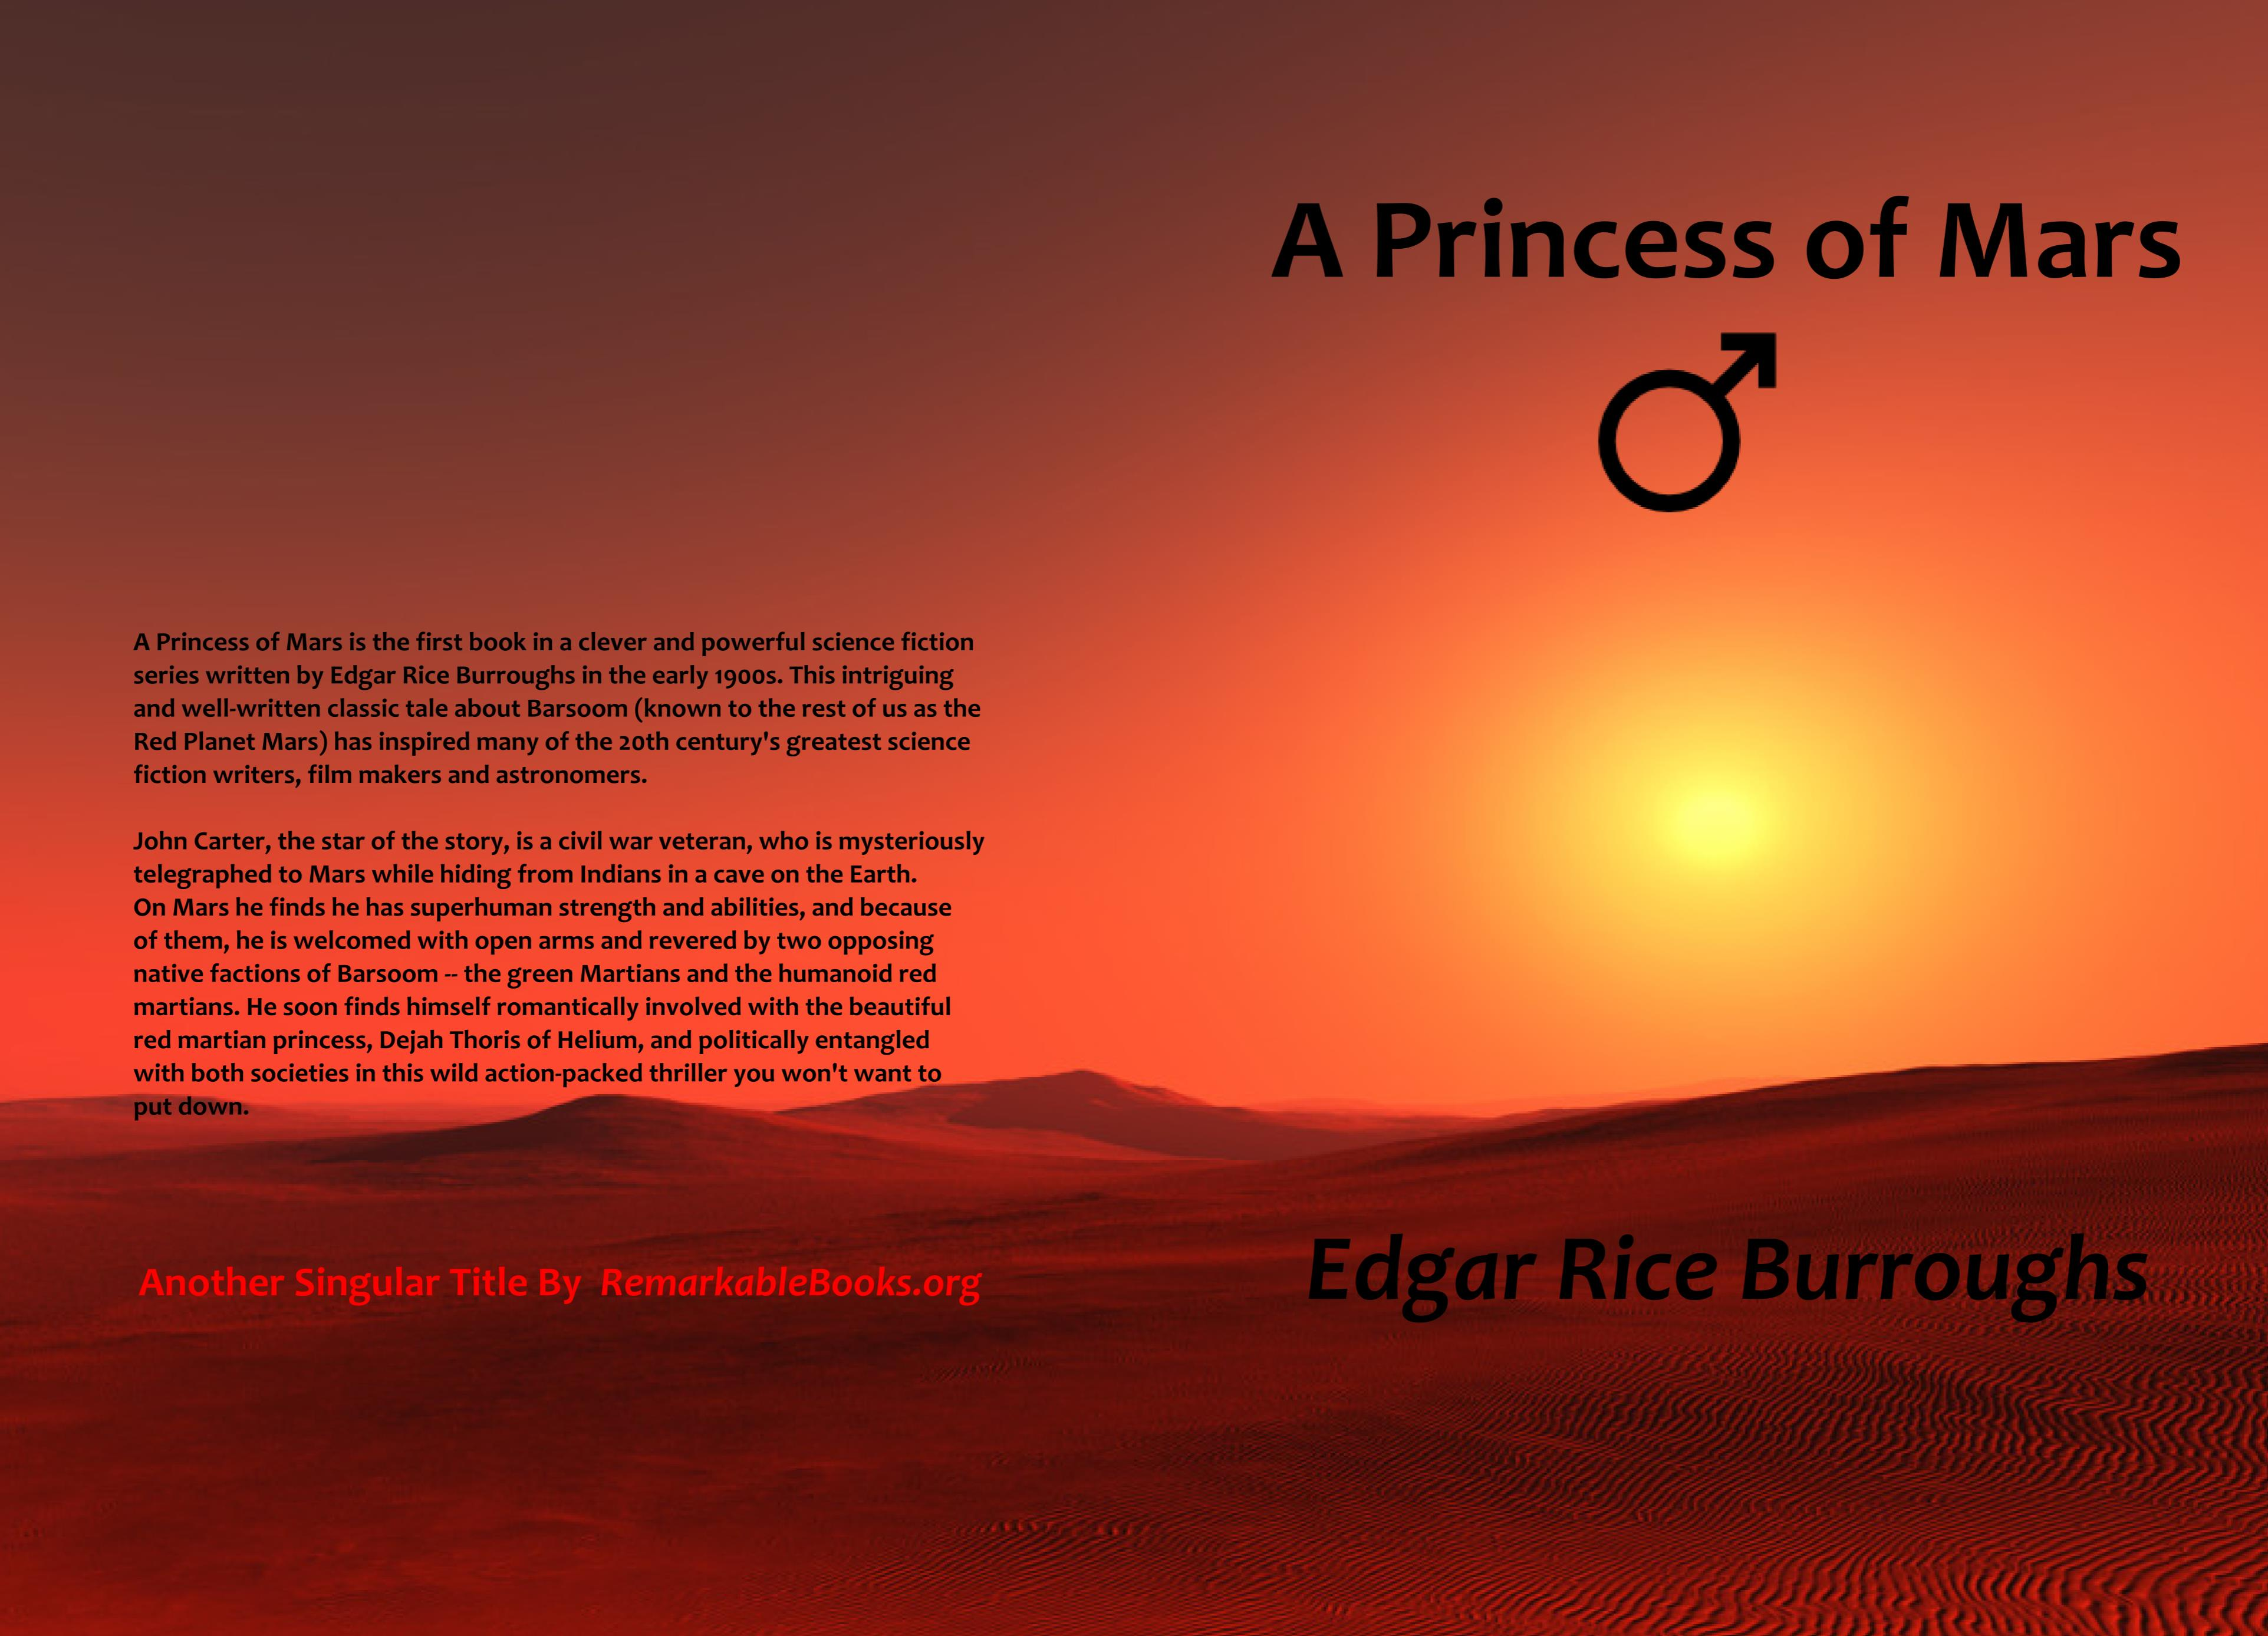 A Princess of Mars cover image